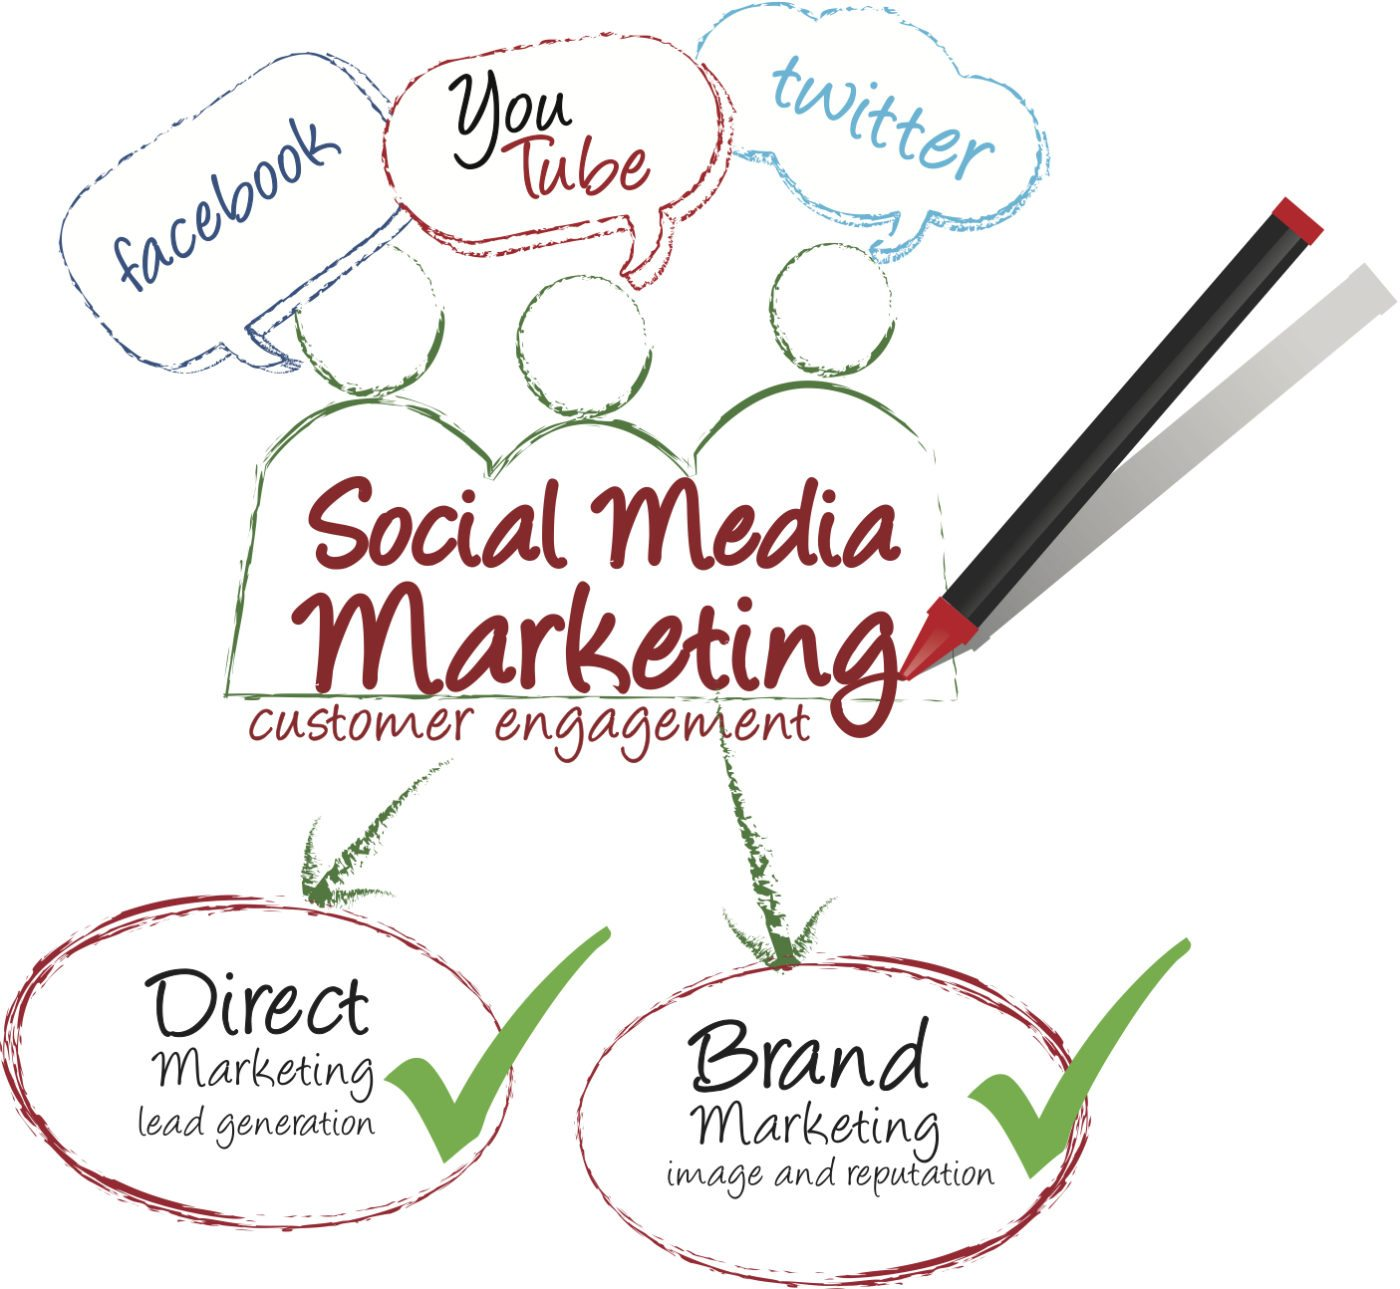 How to get started with a digital and social media marketing strategy